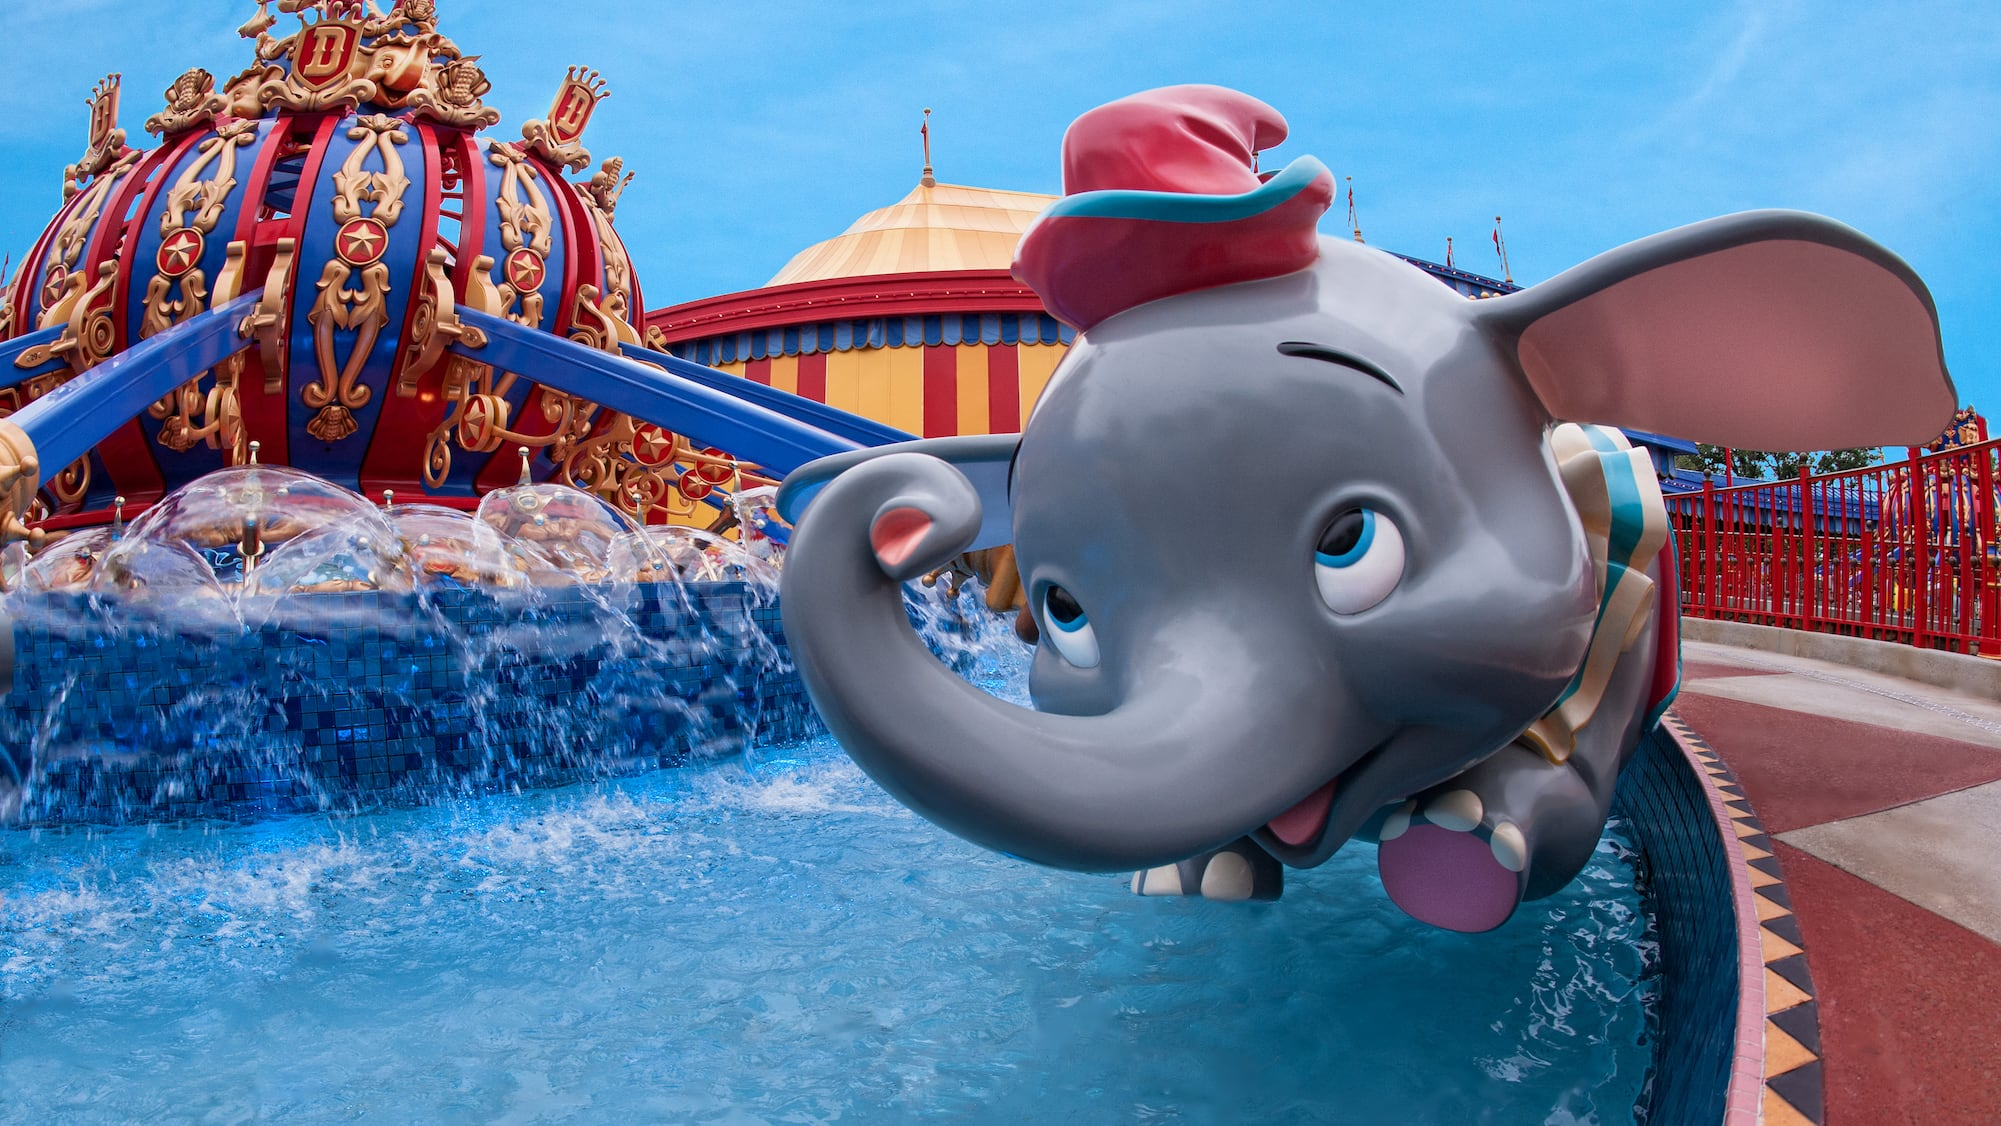 where is dumbo playing